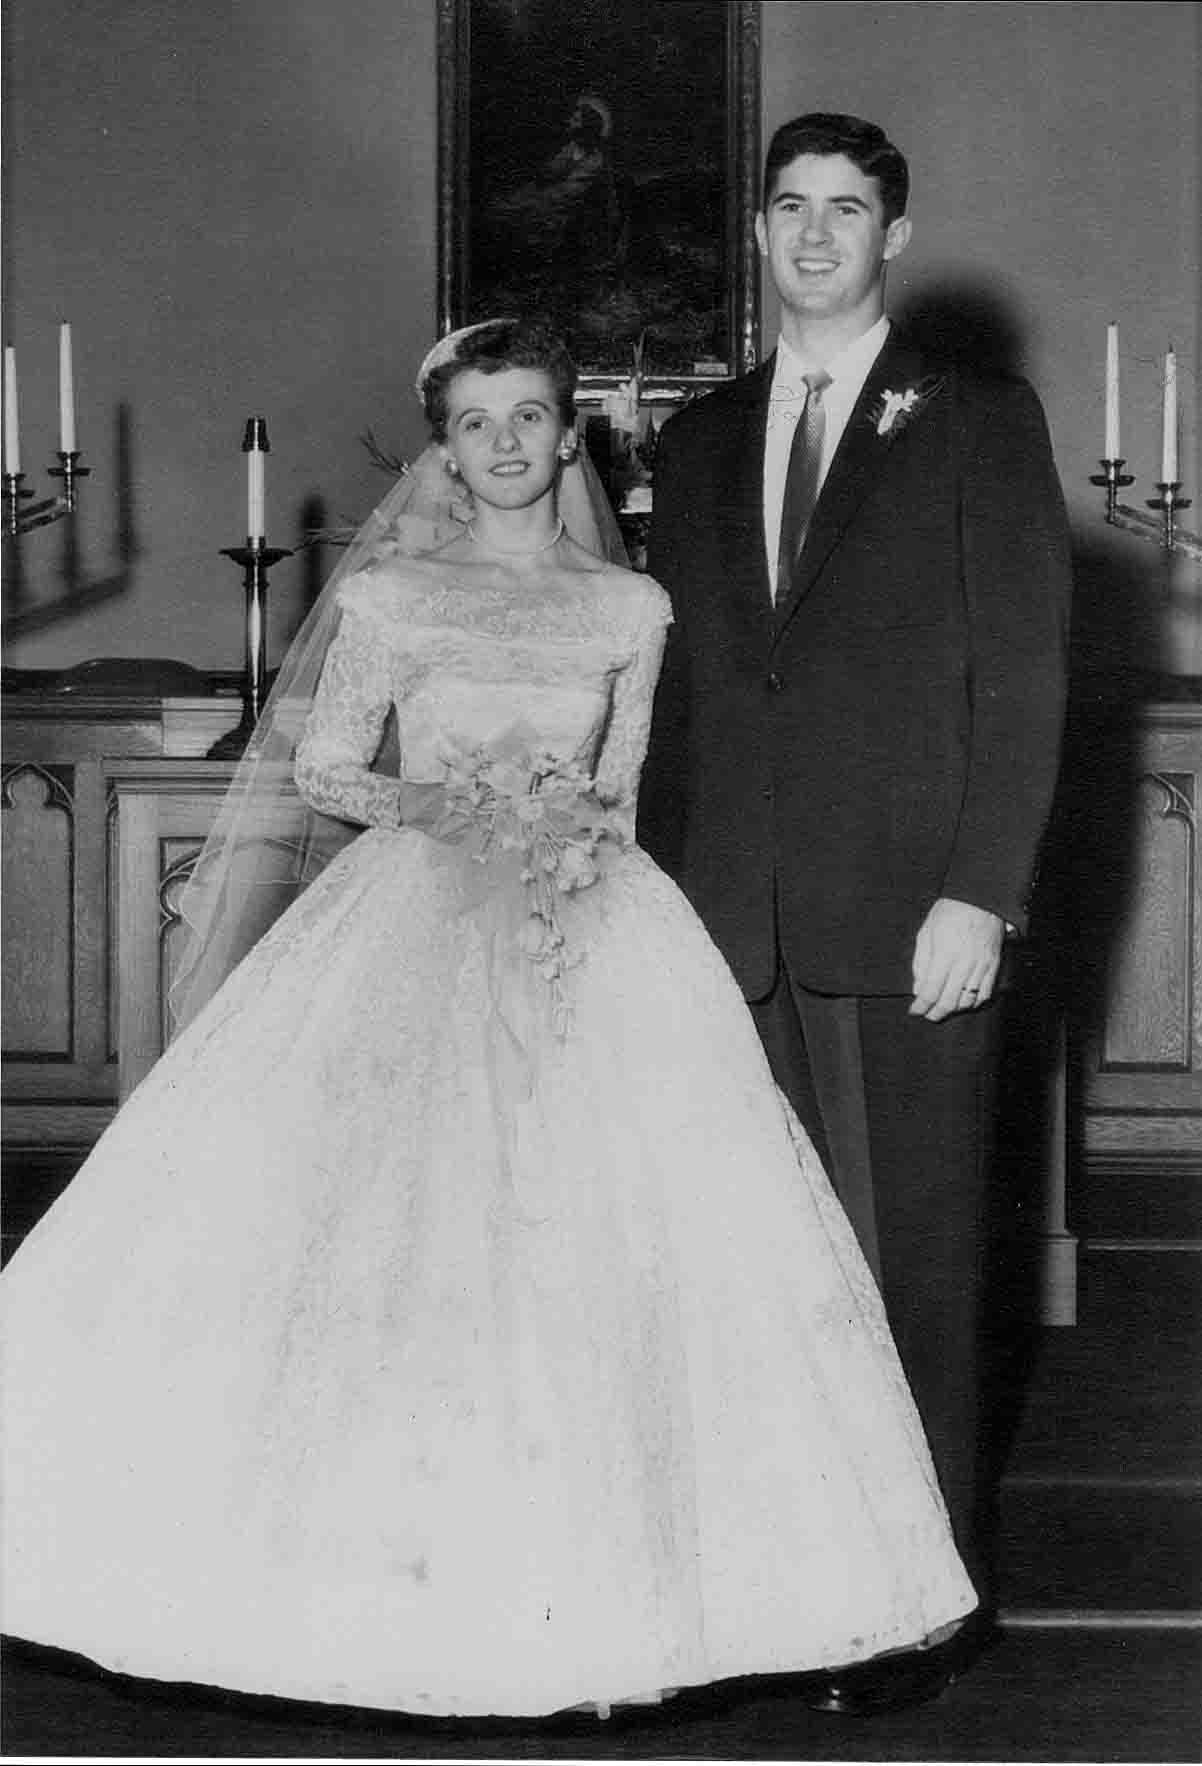 mom and dad wedding pic 1955